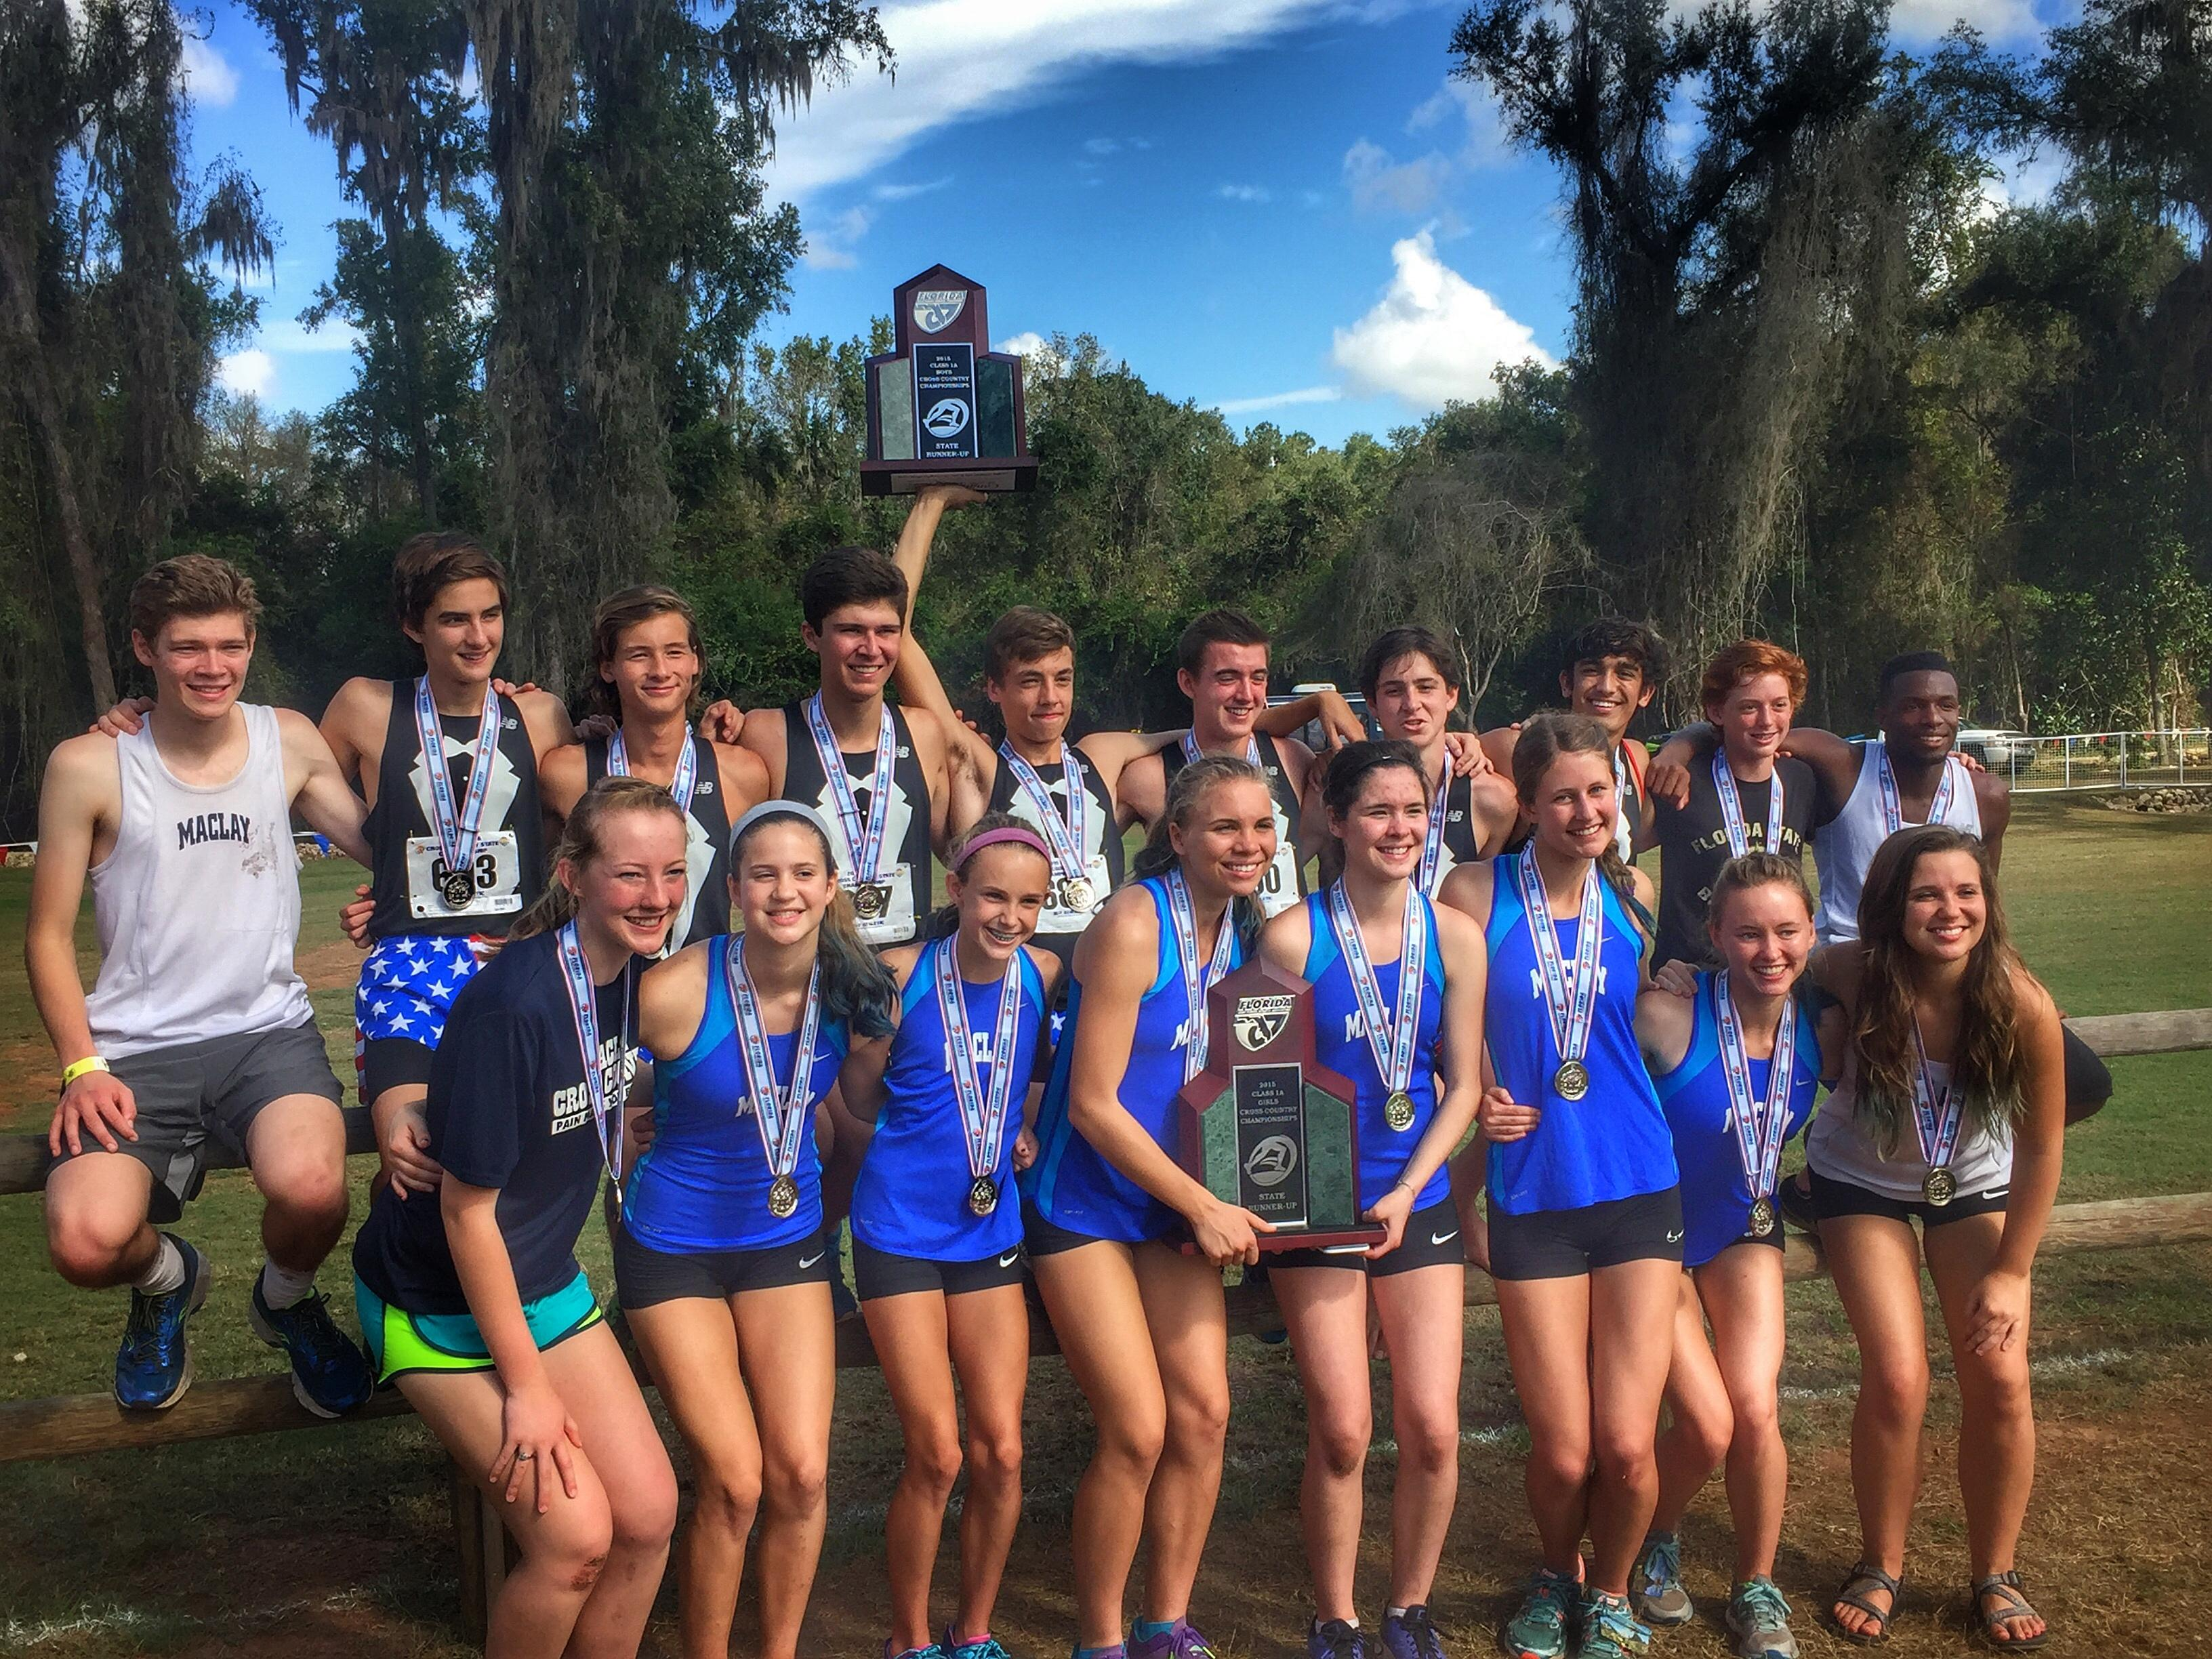 The Maclay boys and girls cross country teams celebrate Class 1A runner-up trophies for both groups following the conclusion of Saturday's FHSAA state cross country finals at Apalachee Regional Park.